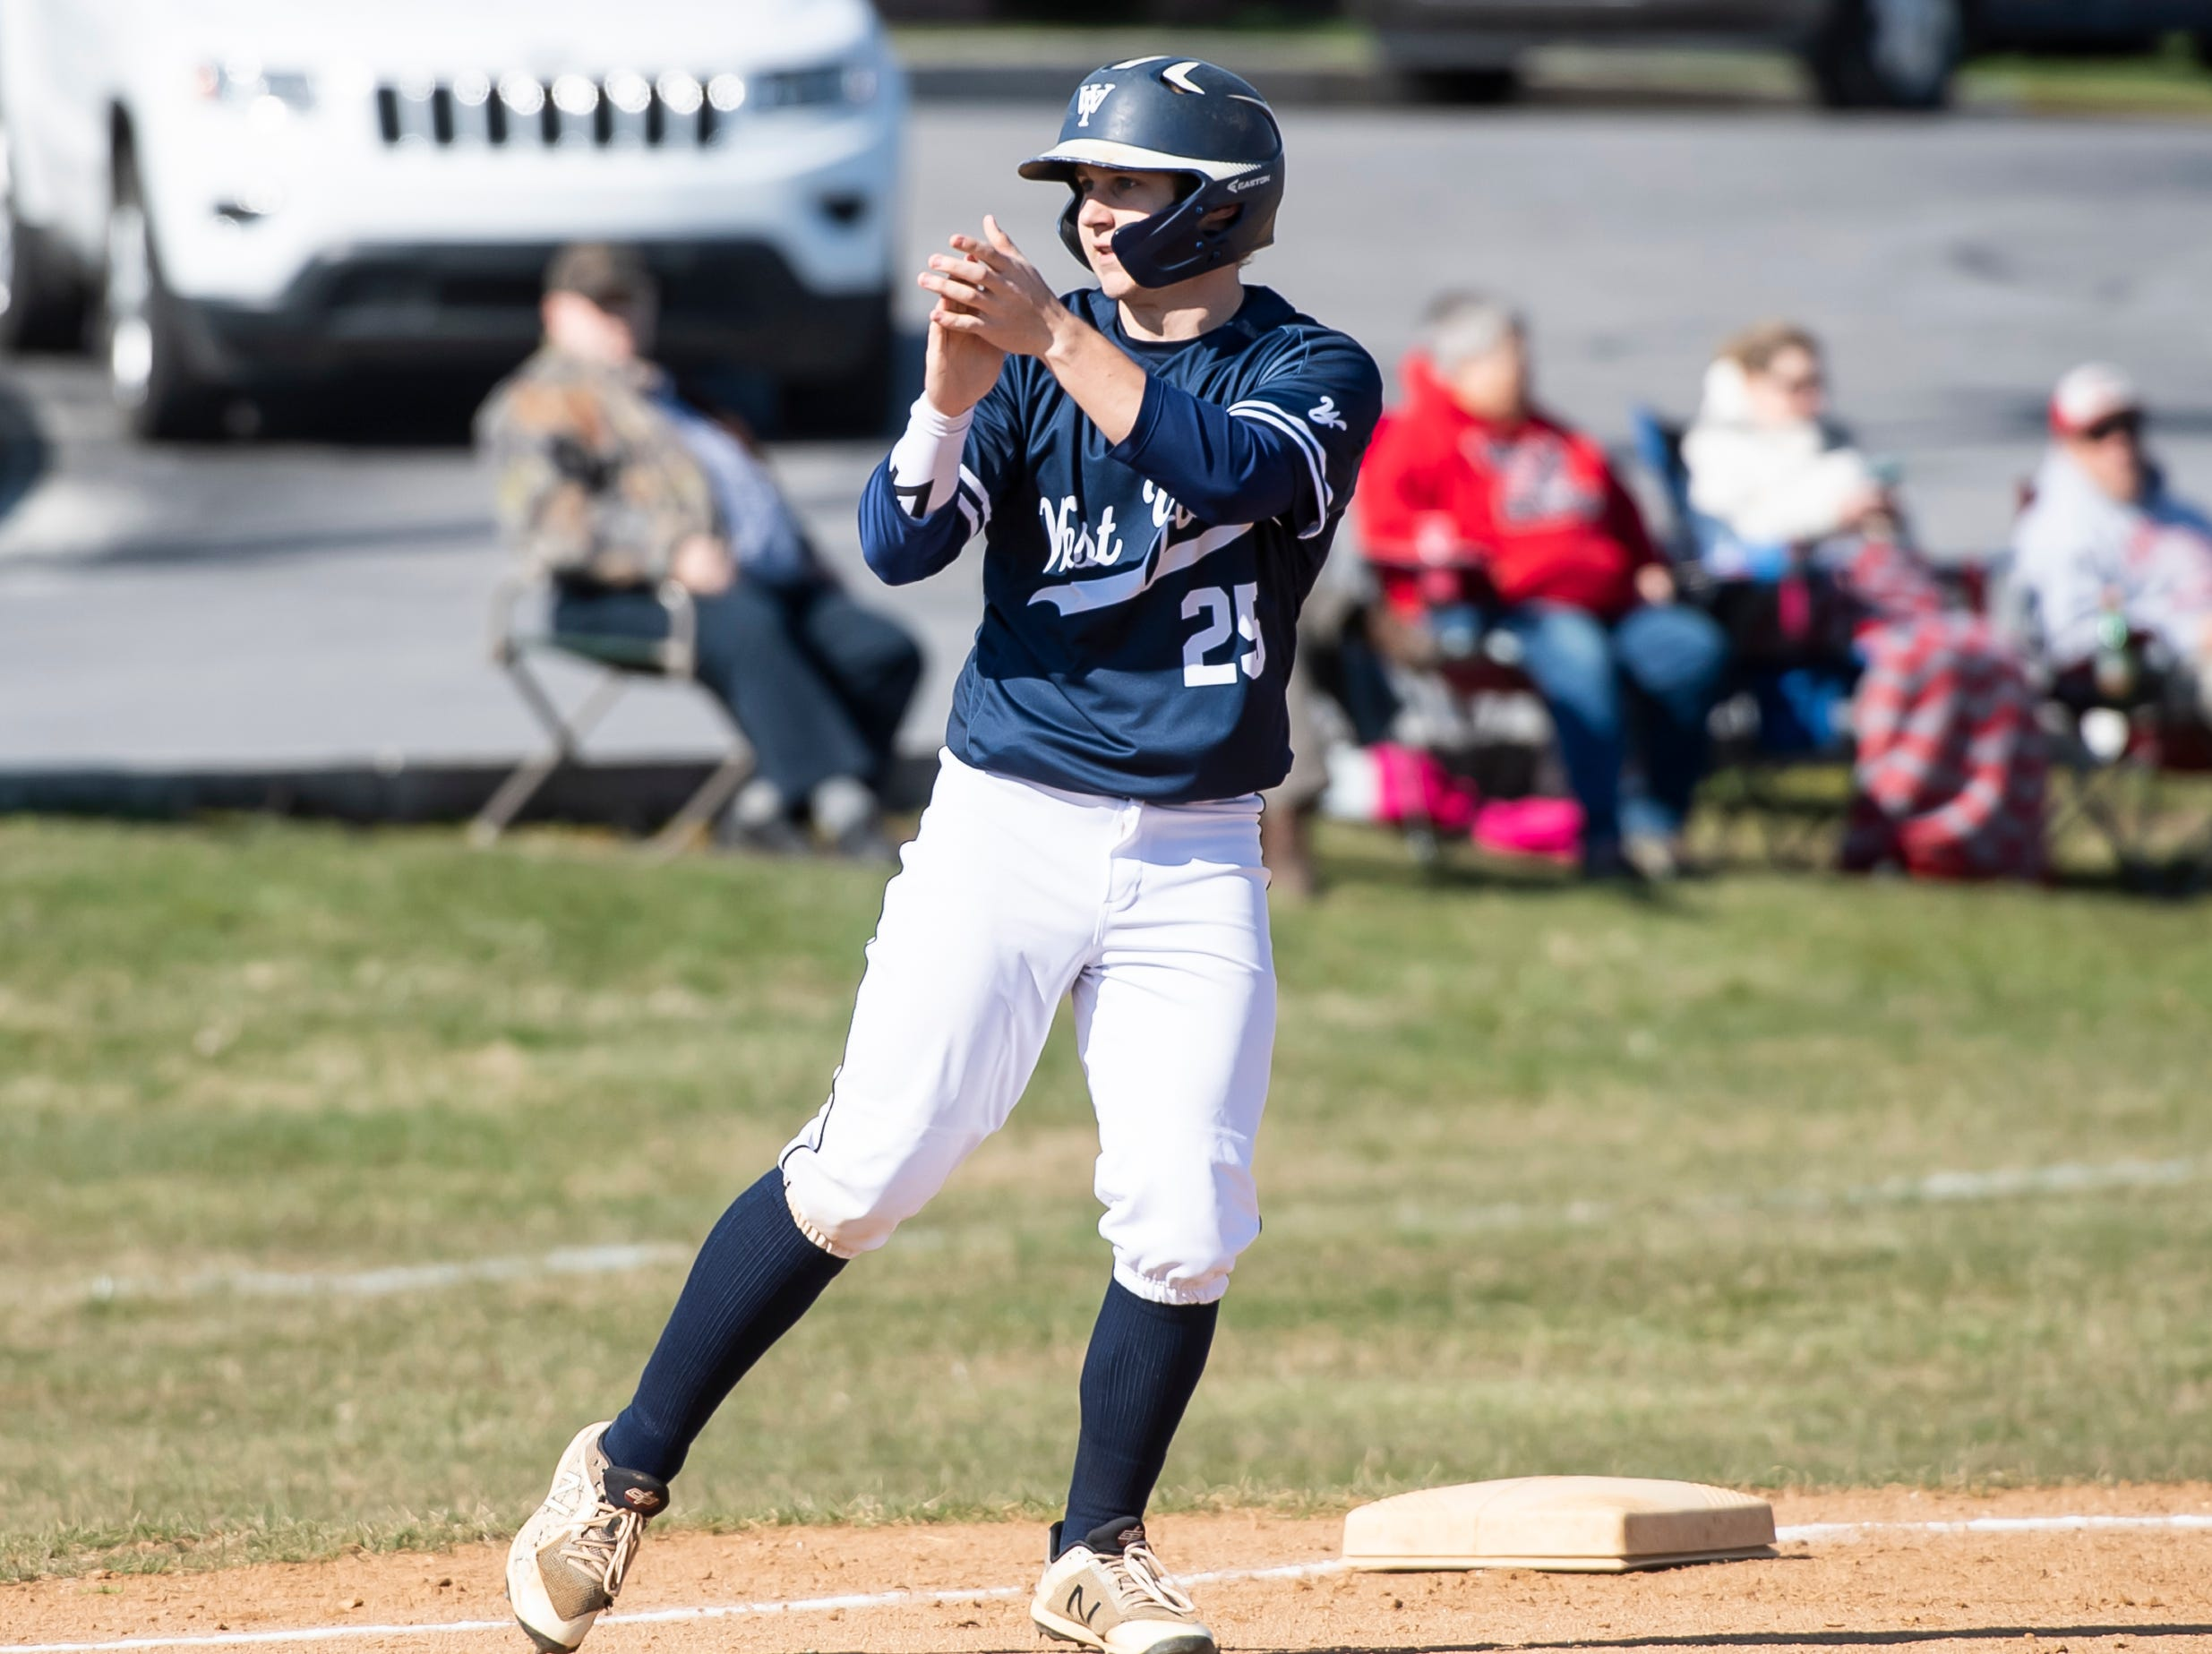 West York's Noah Marshall (25) claps after the Bulldogs score a run during a YAIAA baseball game against Bermudian Springs on Wednesday, April 3, 2019. The Bulldogs won 14-11.